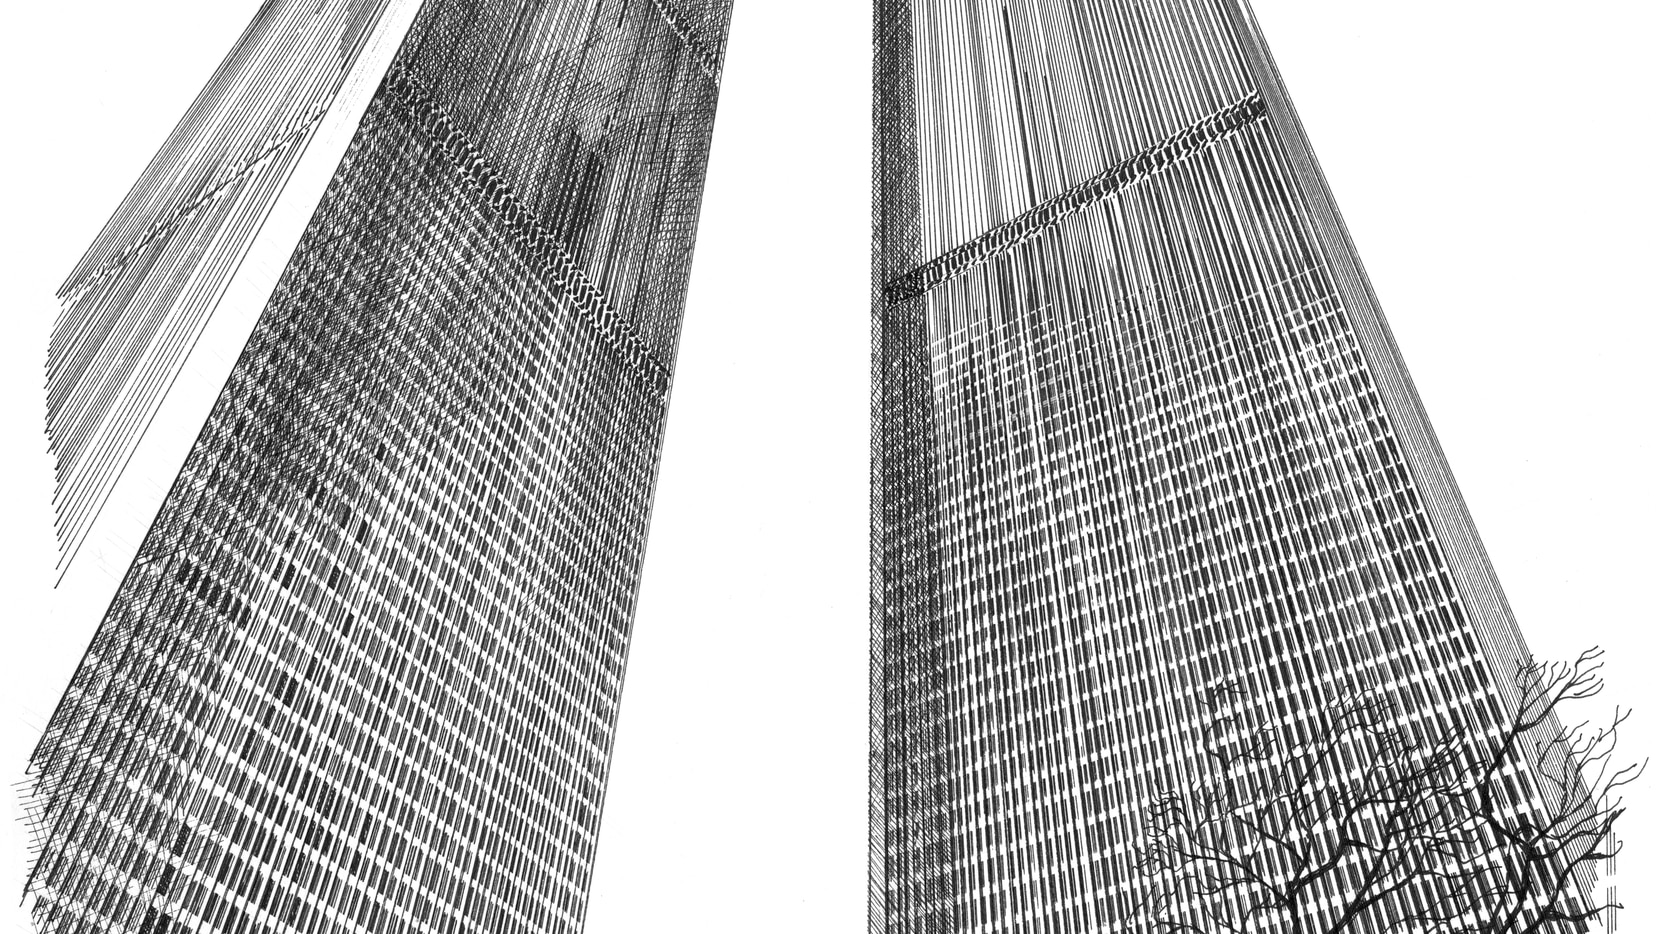 The late architectural illustrator Carlos Diniz drew this rendering of the World Trade Center Twin Towers in 1963.